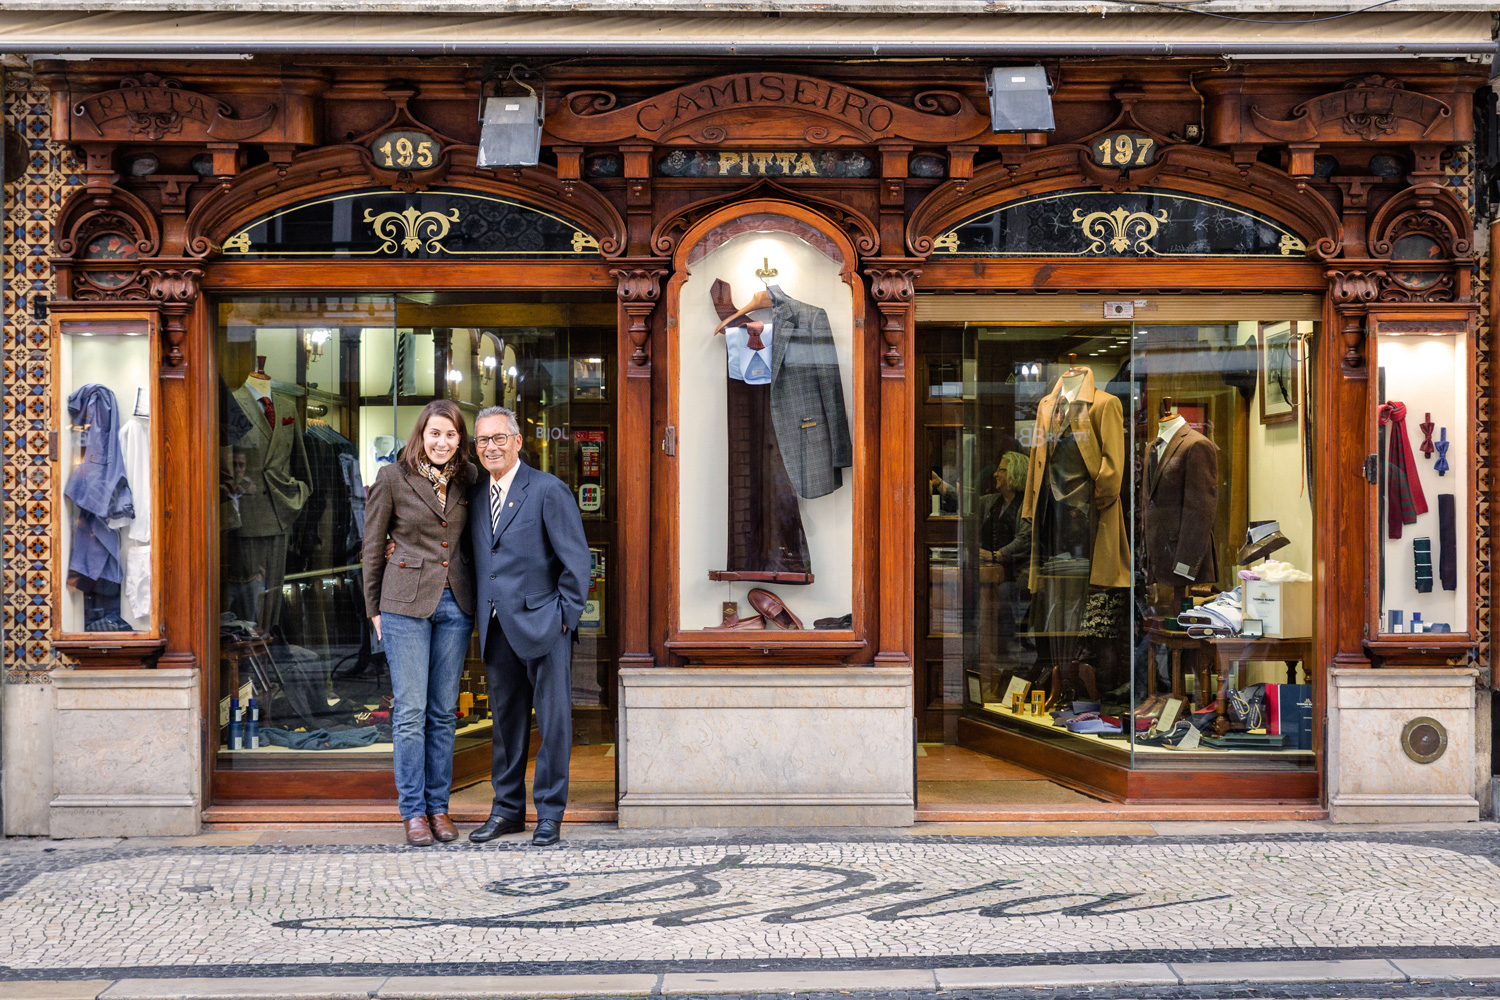 Cláudia Marques and her grandfather Alfredo Teixeira welcome visitors into their men's clothing store